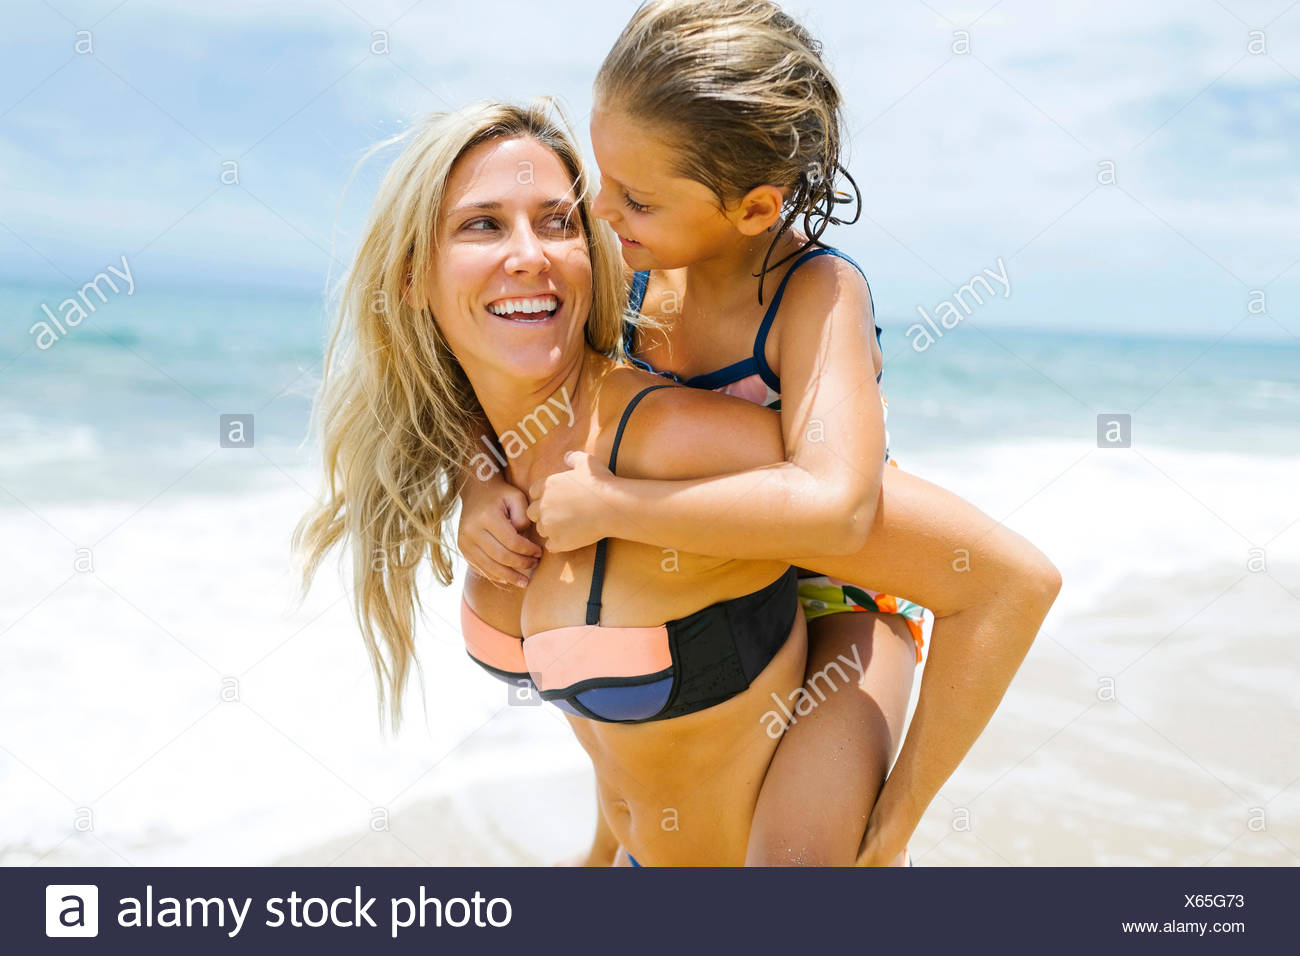 Floral Swimming Costume Photos Floral Swimming Costume Images Alamy